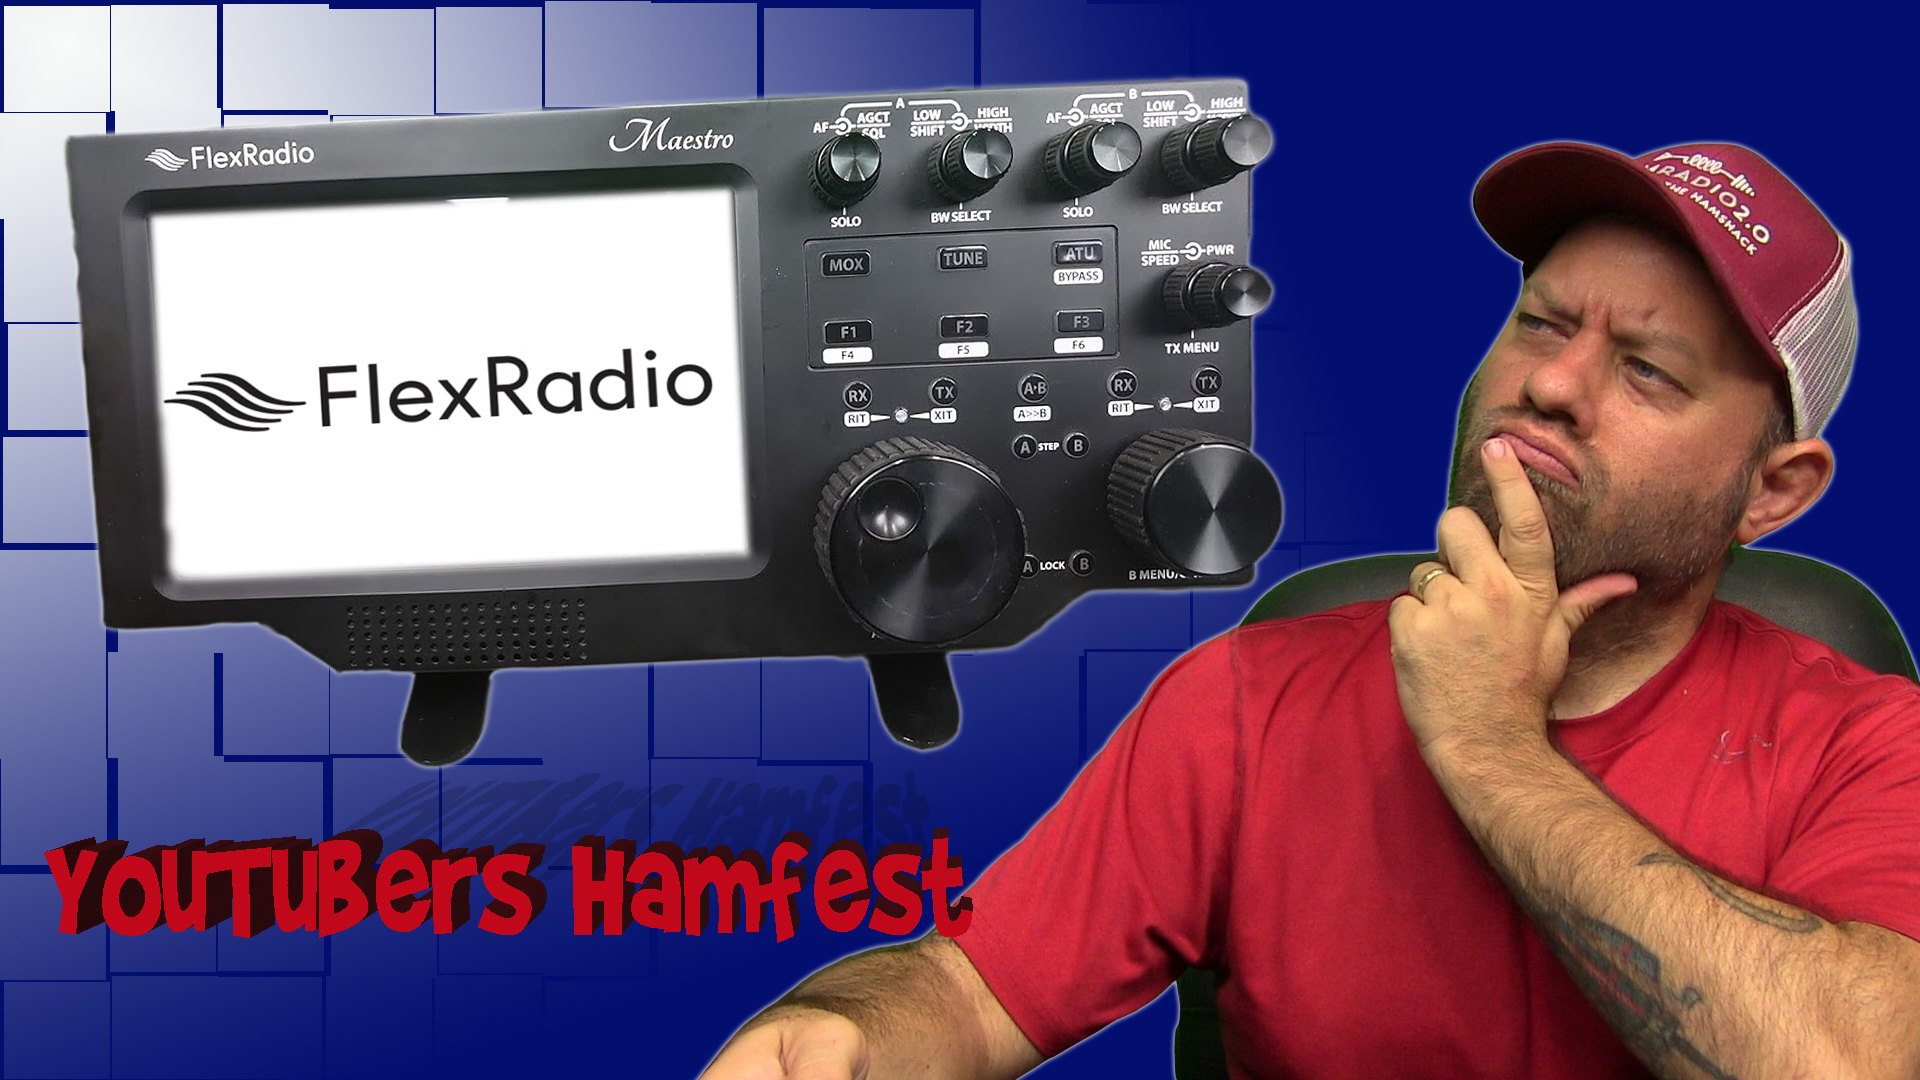 Episode 376: FlexRadio Interview with VA3MW for the YouTubers Hamfest